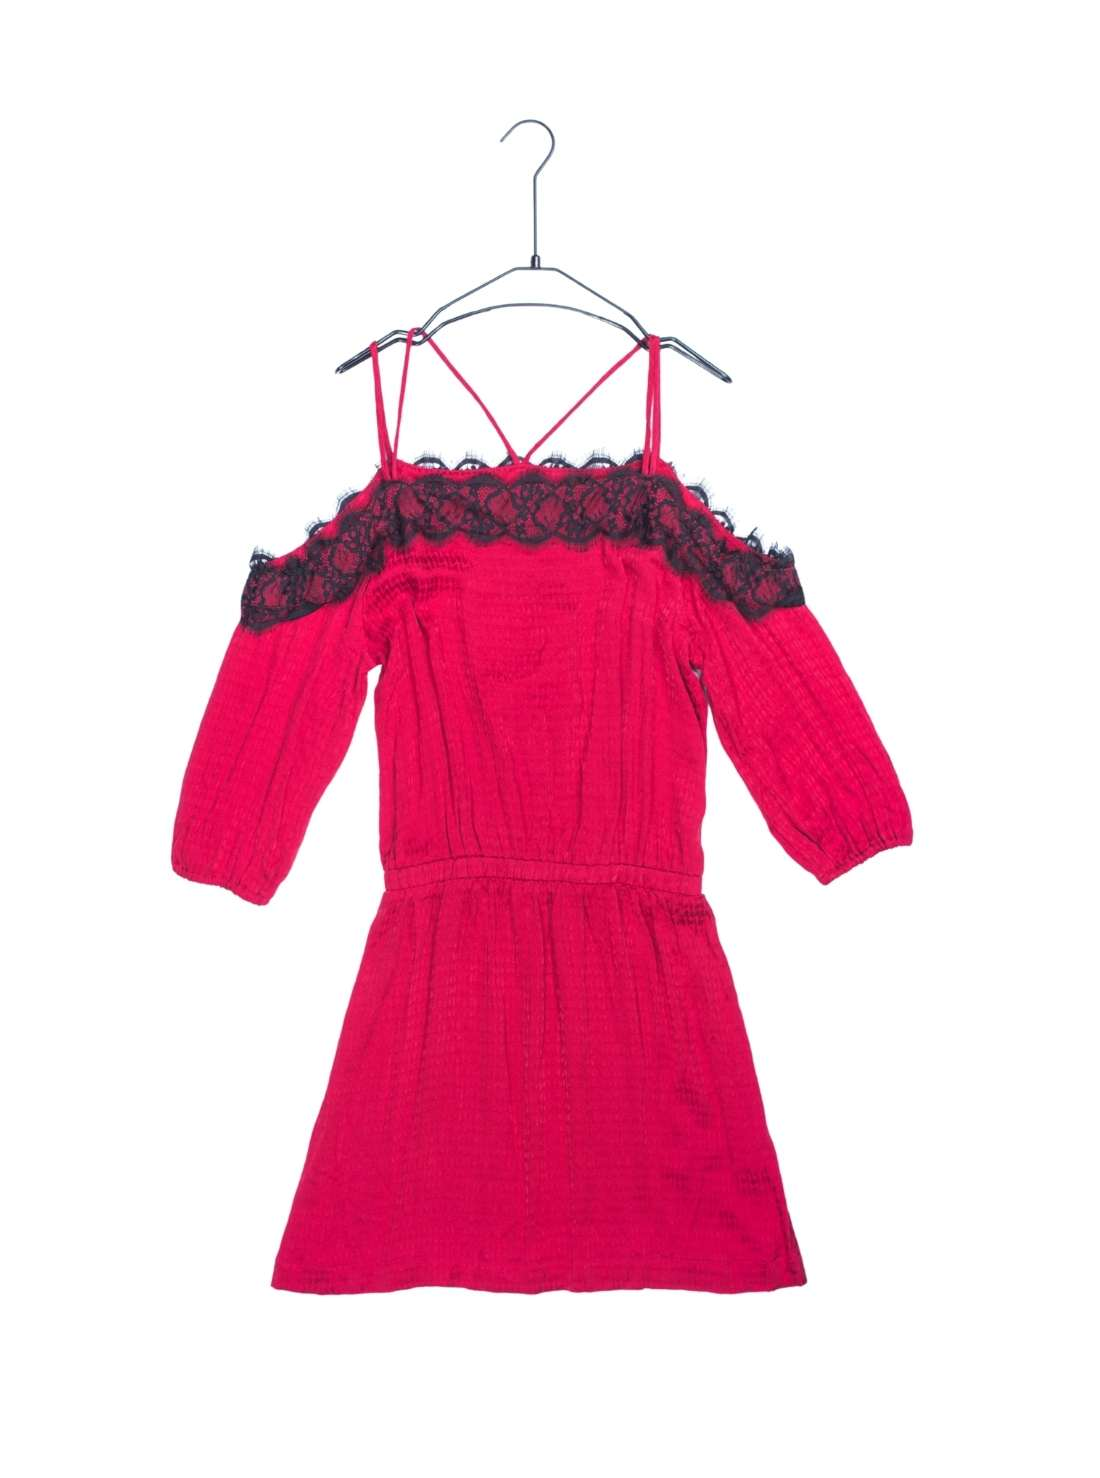 Woven Jaquard Cupro Dress with Lace Trim at Neckline